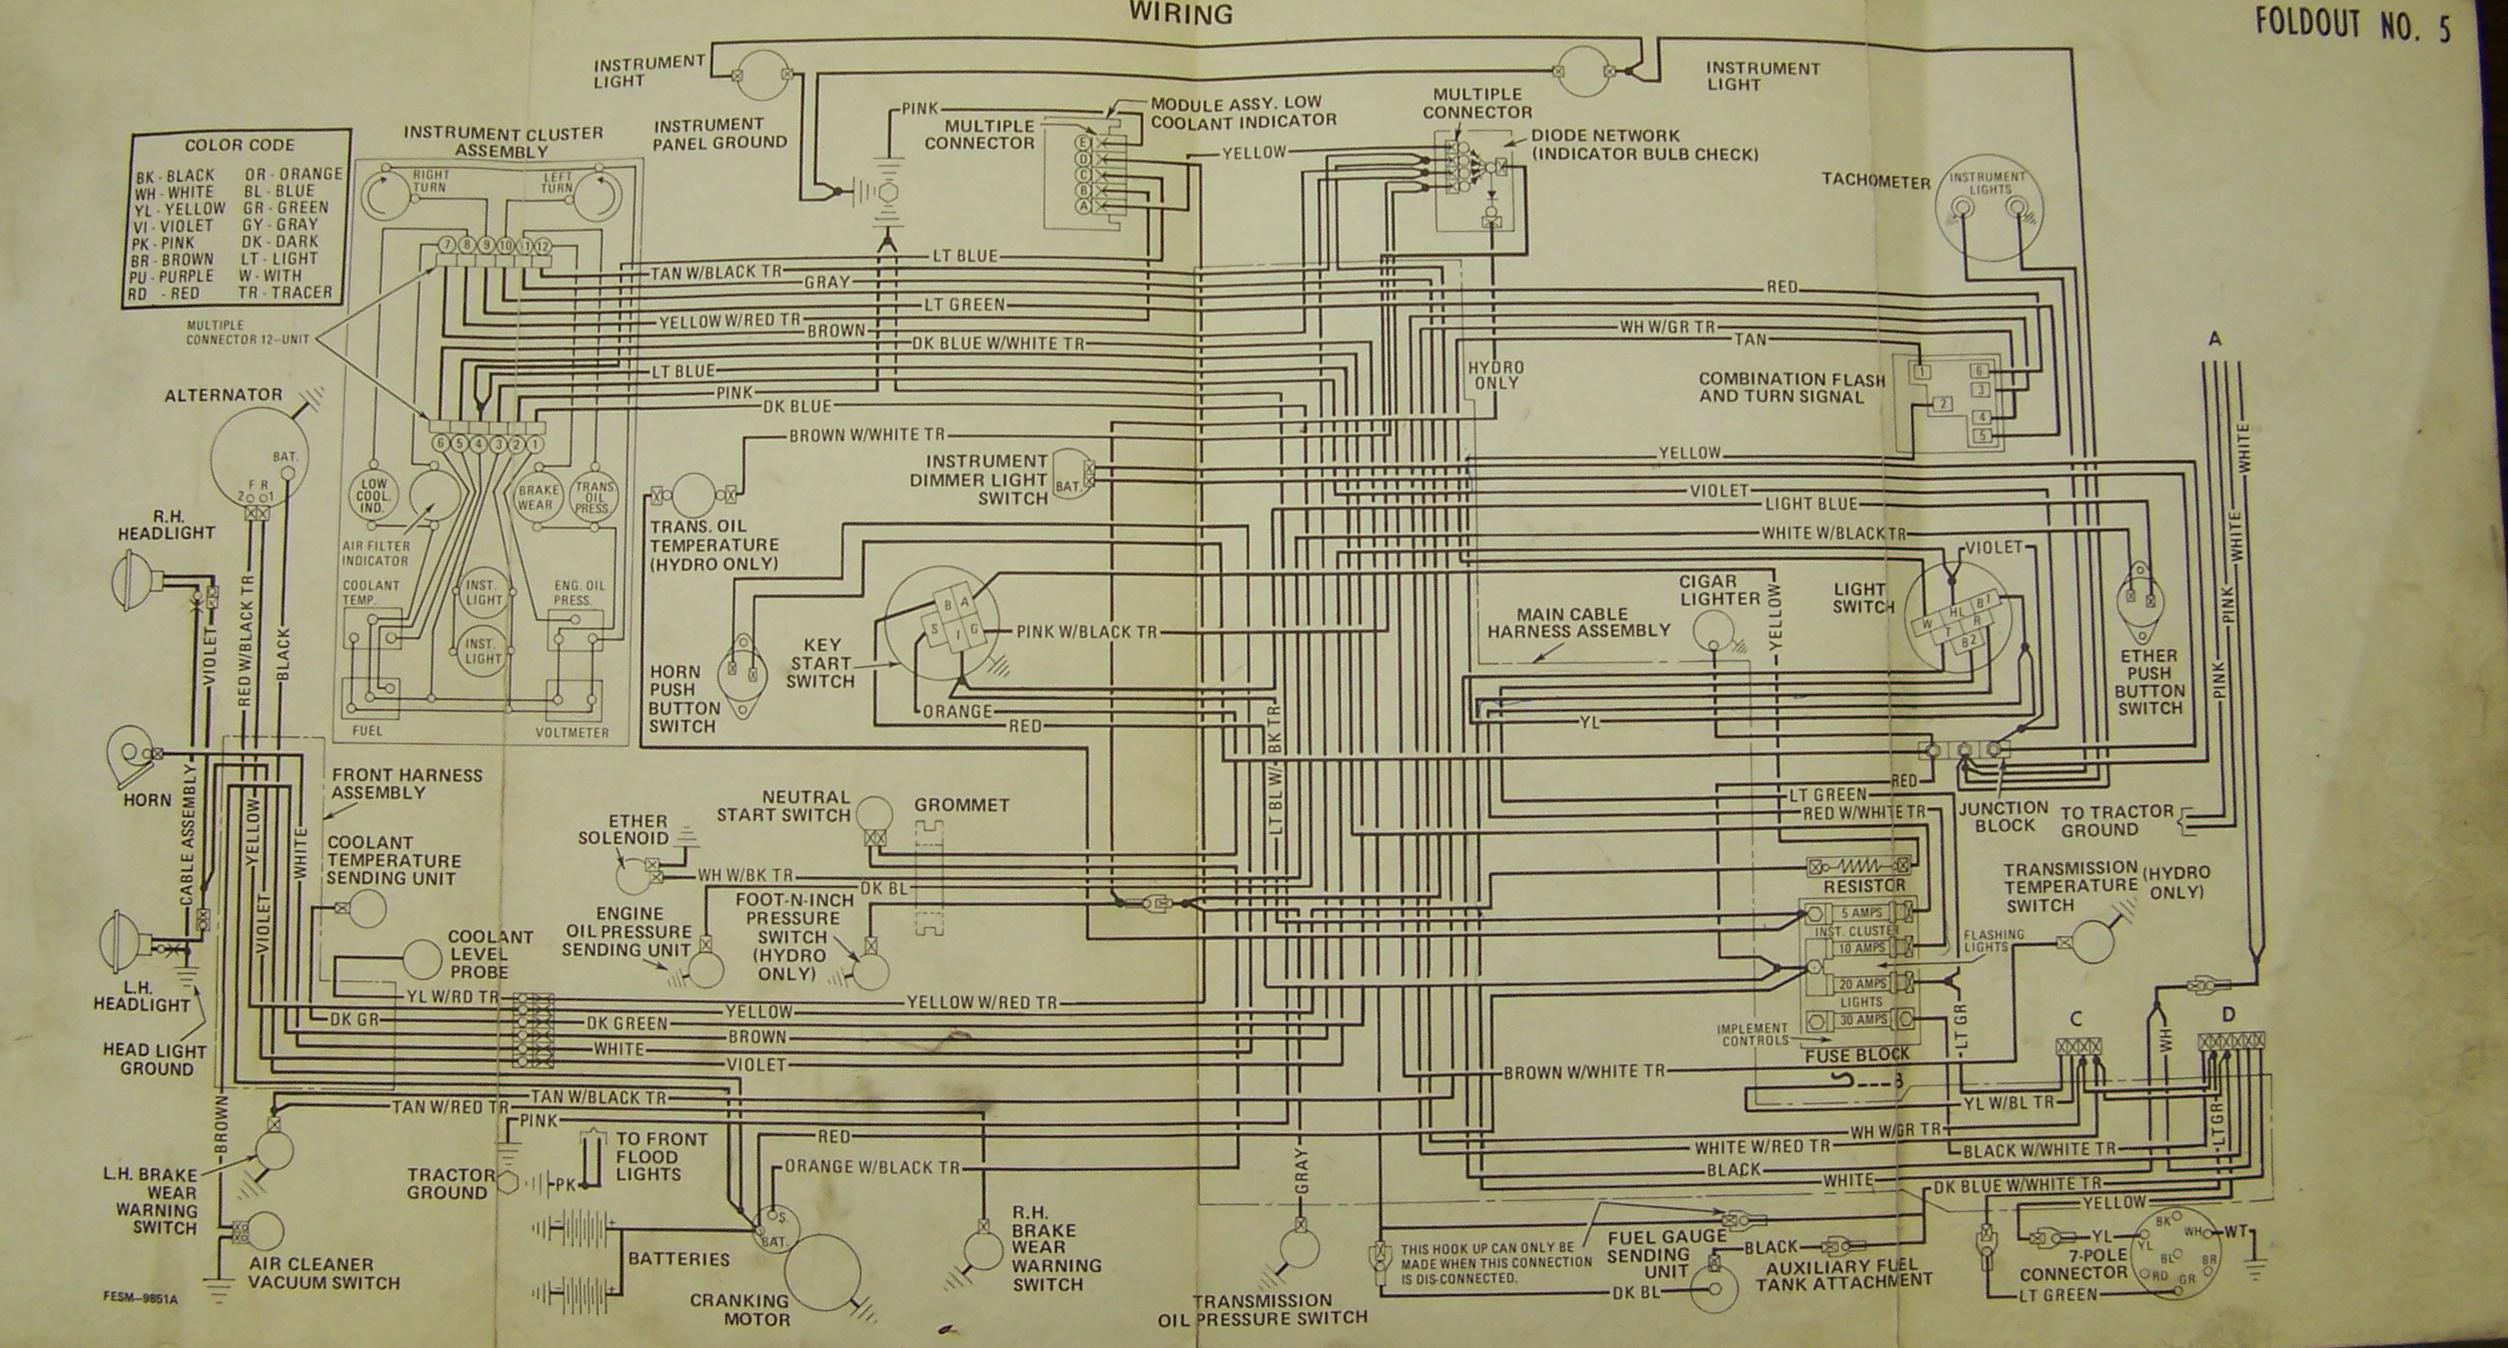 carter gruenewald co inc ih farmall tractor electrical wiring rh cngco com  IHC Wiring Diagrams farmall 706 gas wiring diagram